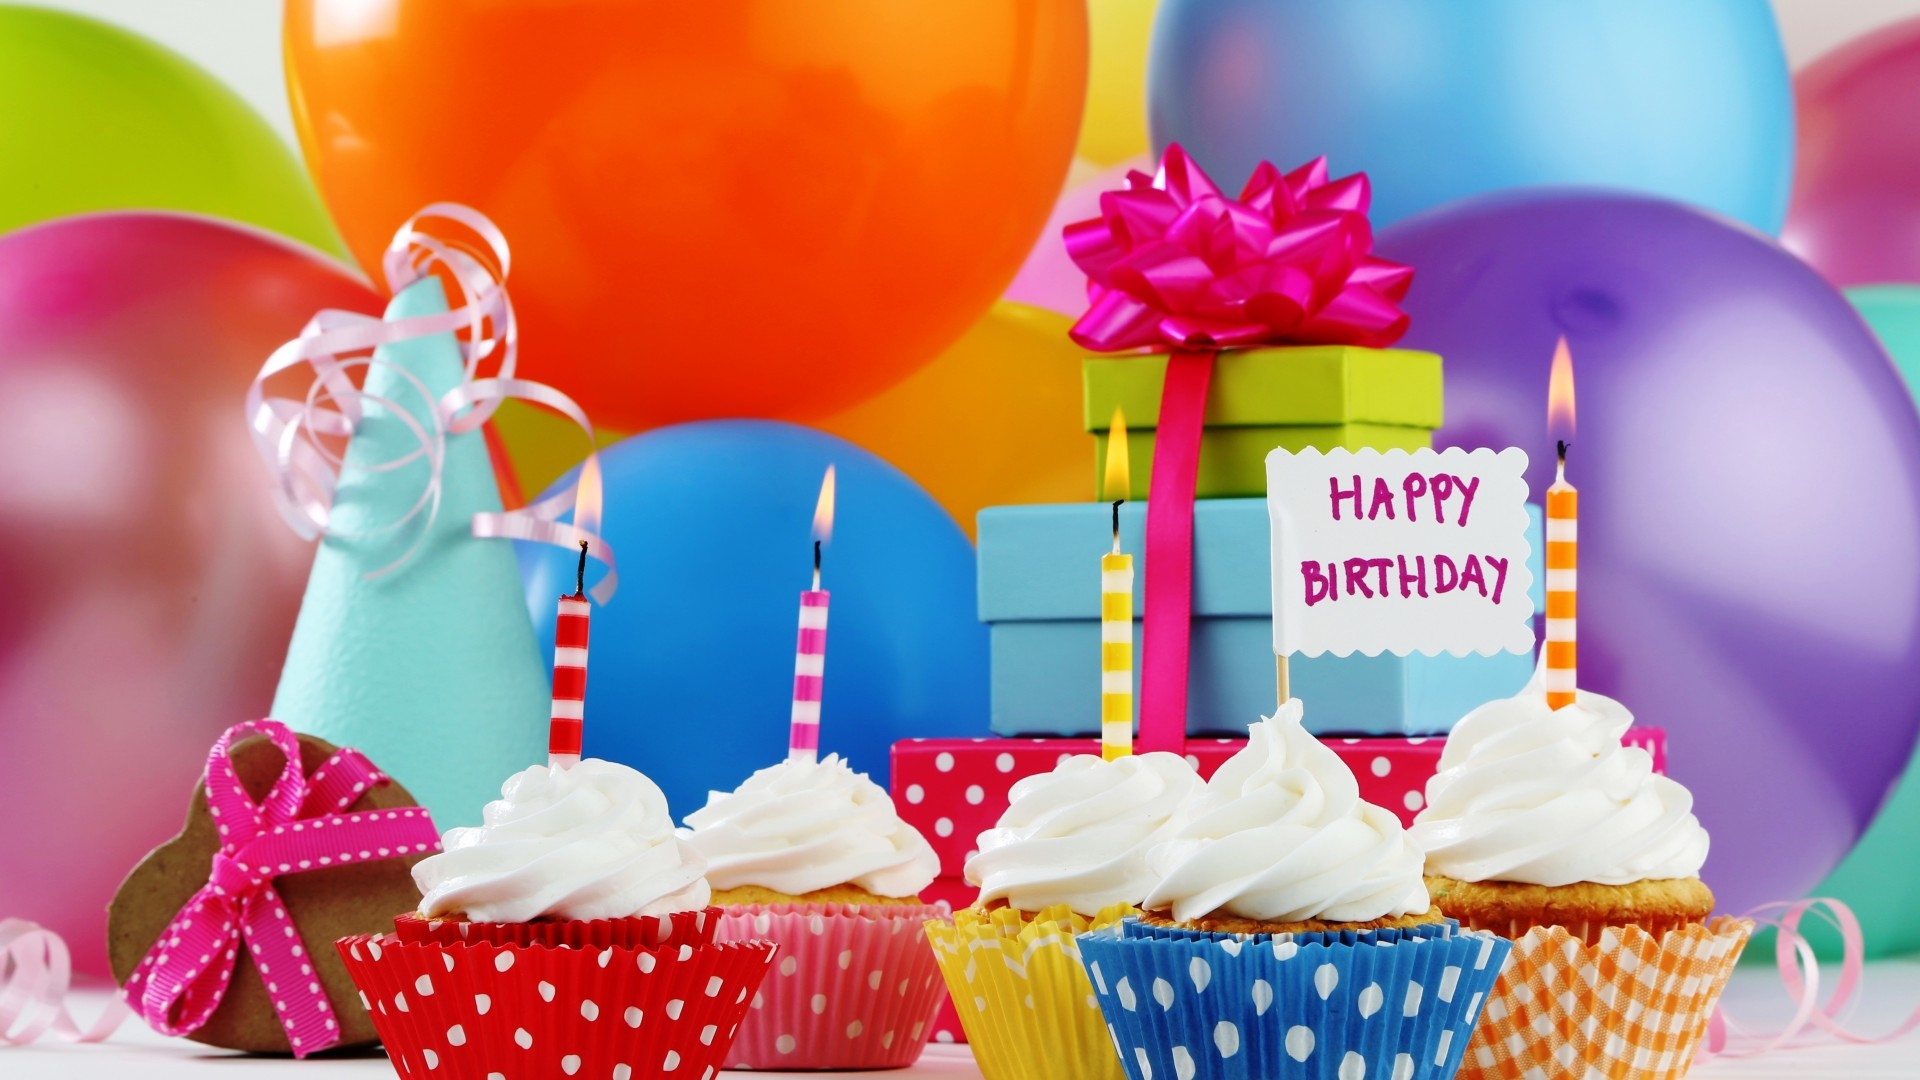 Res: 1920x1080, happy birthday cupcake wallpaper backgrounds hd wallpapers cool images  download free amazing smart phones colourful widescreen 1920×1080 Wallpaper  HD